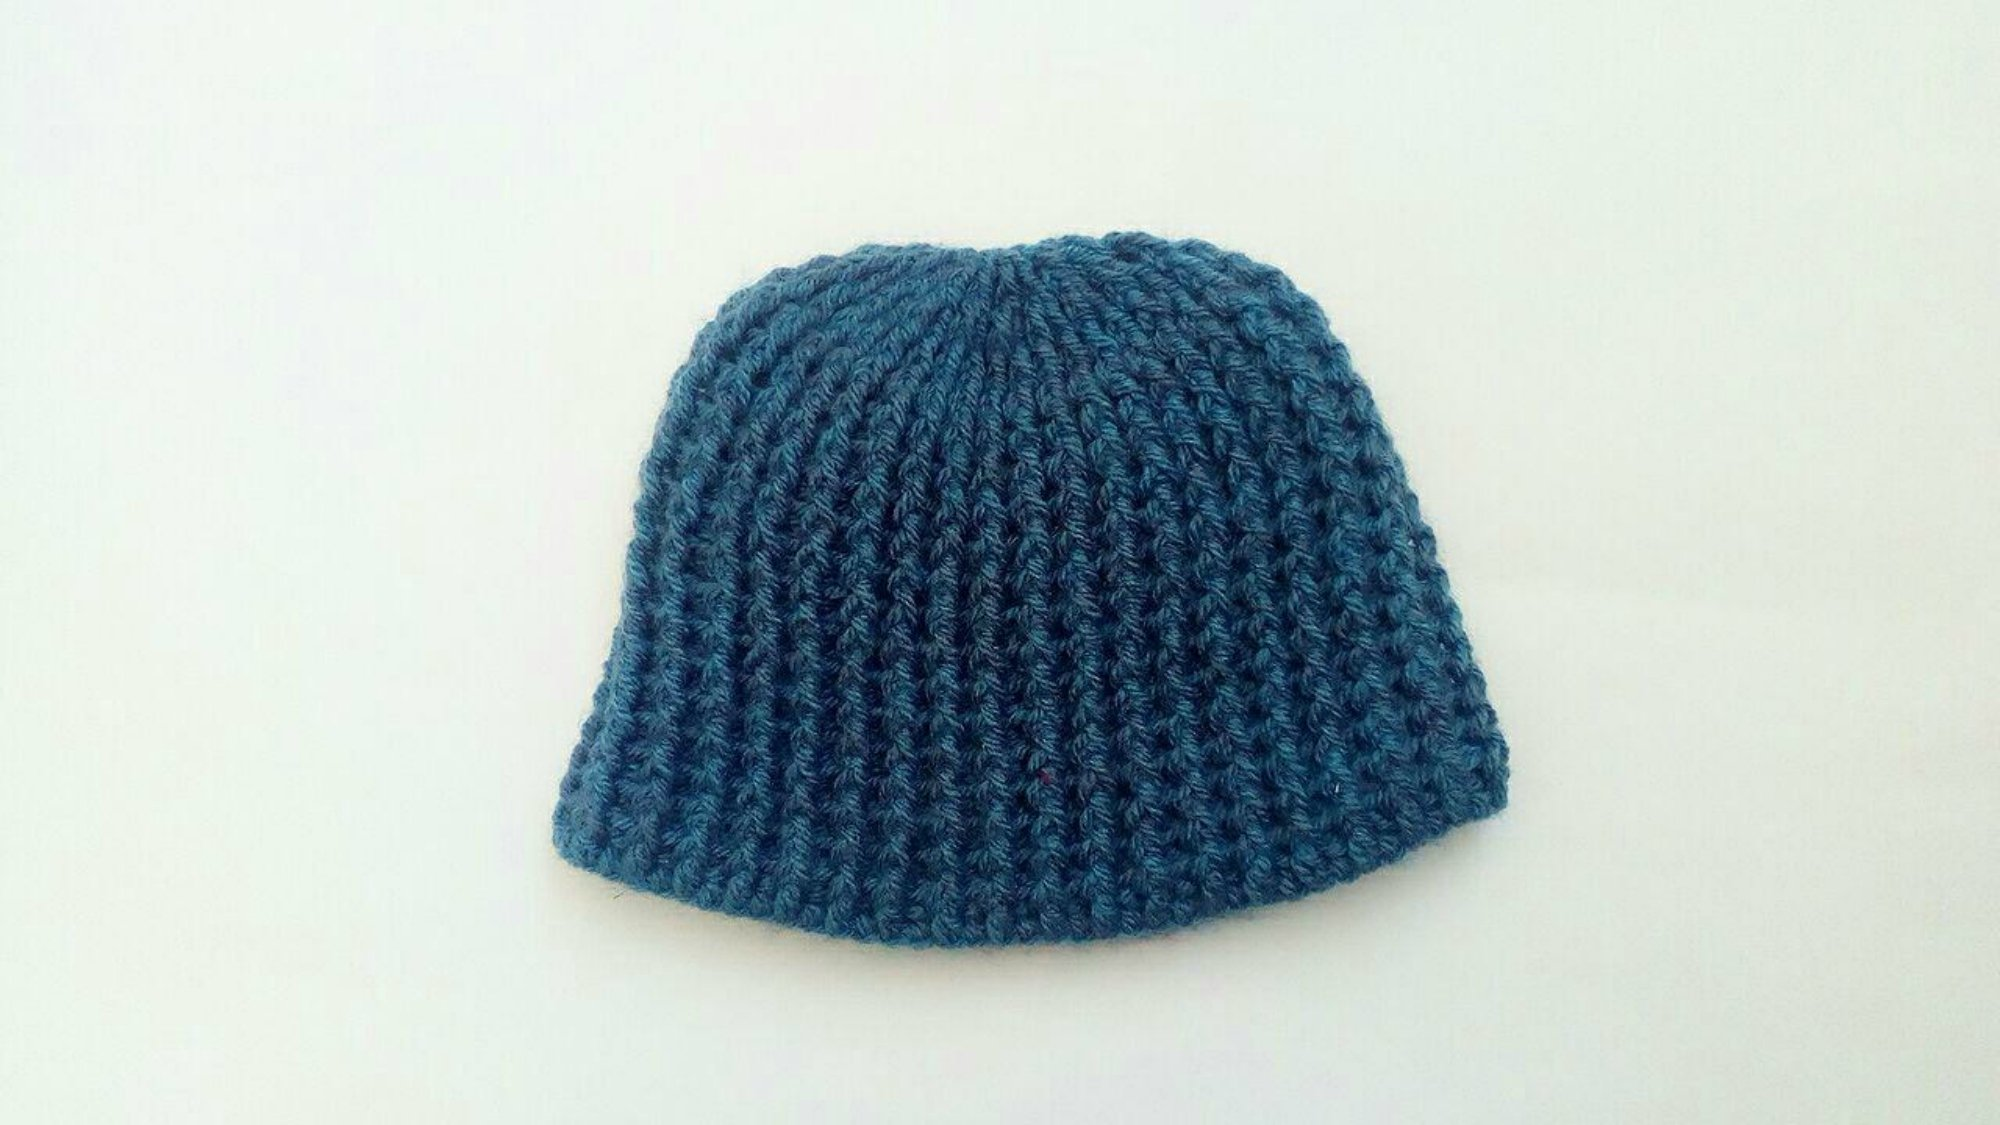 crochet hat for winter